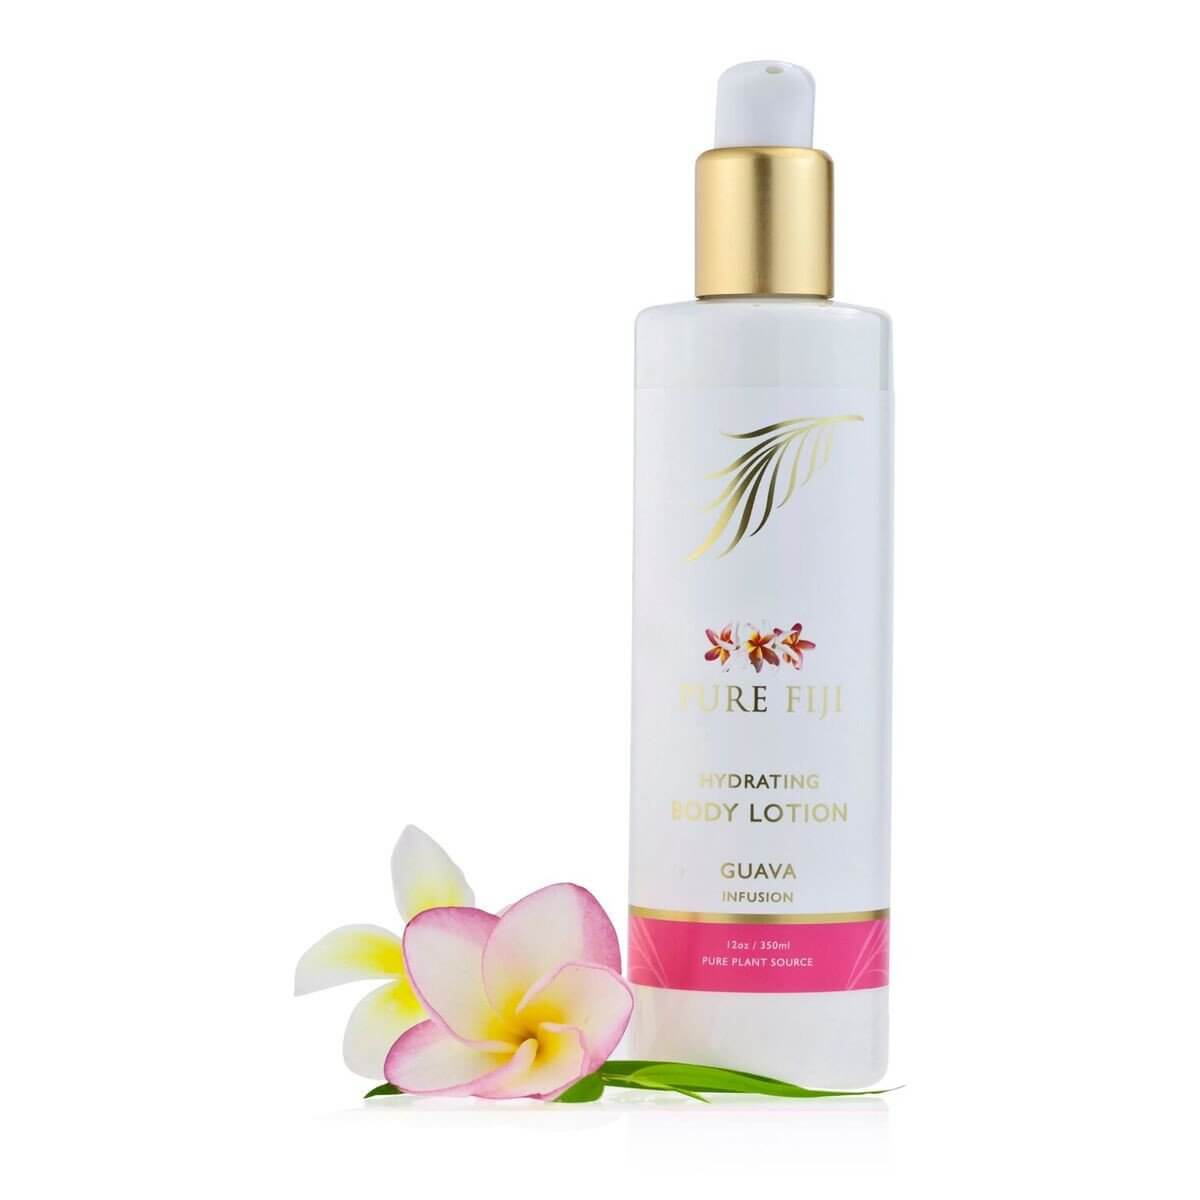 Guava Hydrating Body Lotion. Pure Fiji Guava Hydrating lotion-anti ageing blend.